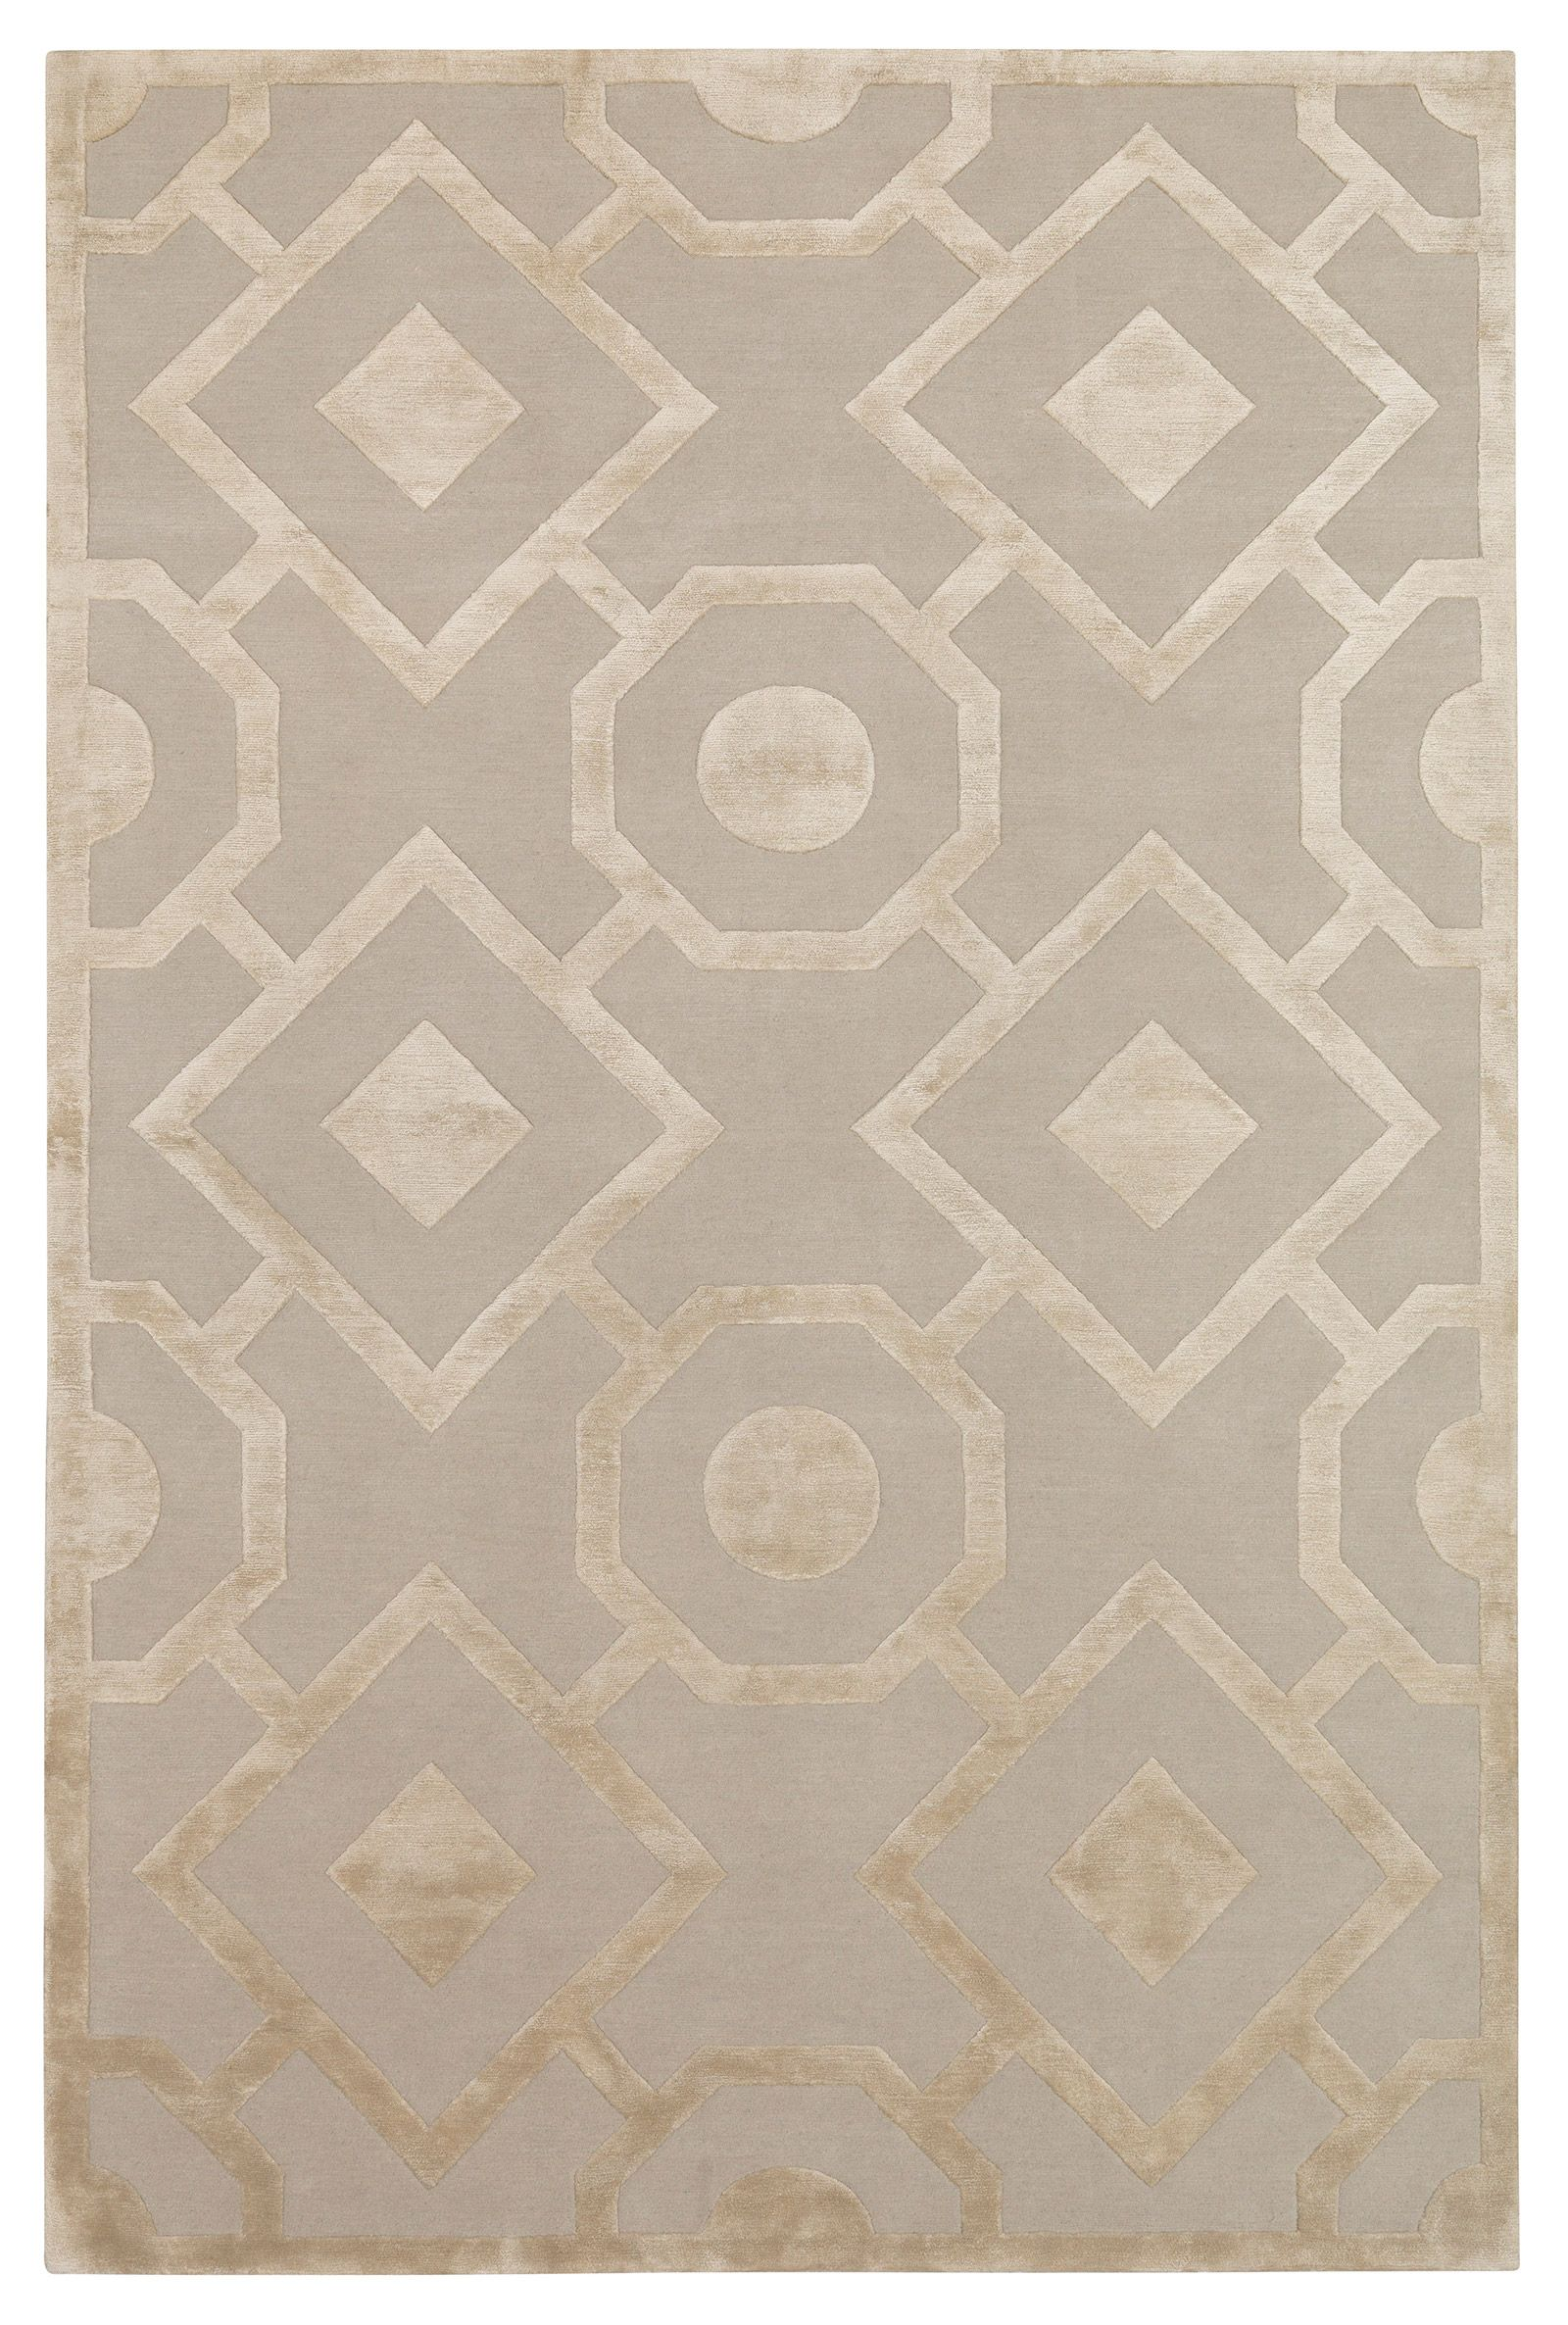 Romy By Suzanne Sharp Wool And Silk Contemporary Hand Knotted Designer Rugs Contemporaryrugs Rugs Rug Company Rugs On Carpet